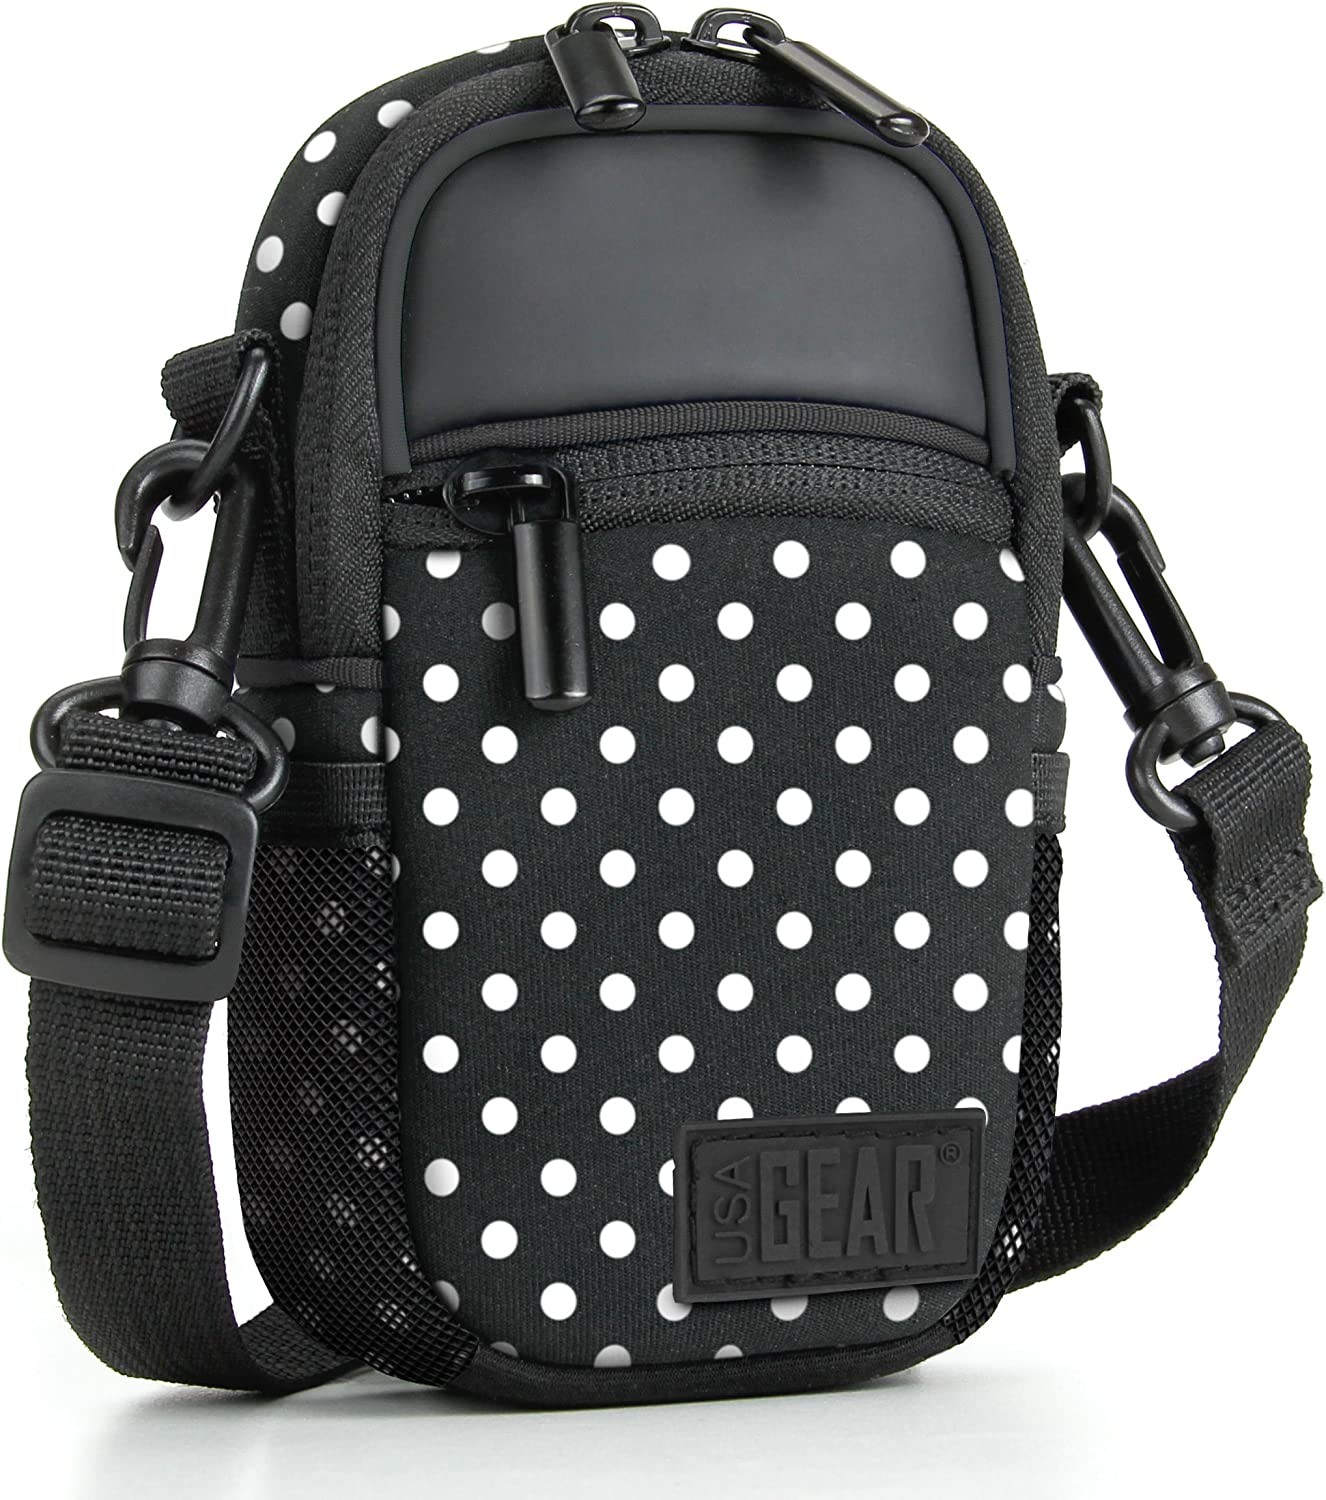 USA GEAR Compact Camera Case (Polka Dot) Point and Shoot Camera Bag with Accessory Pockets, Rain Cover and Shoulder Strap-Compatible with Sony CyberShot, Canon PowerShot ELPH, Nikon COOLPIX and More